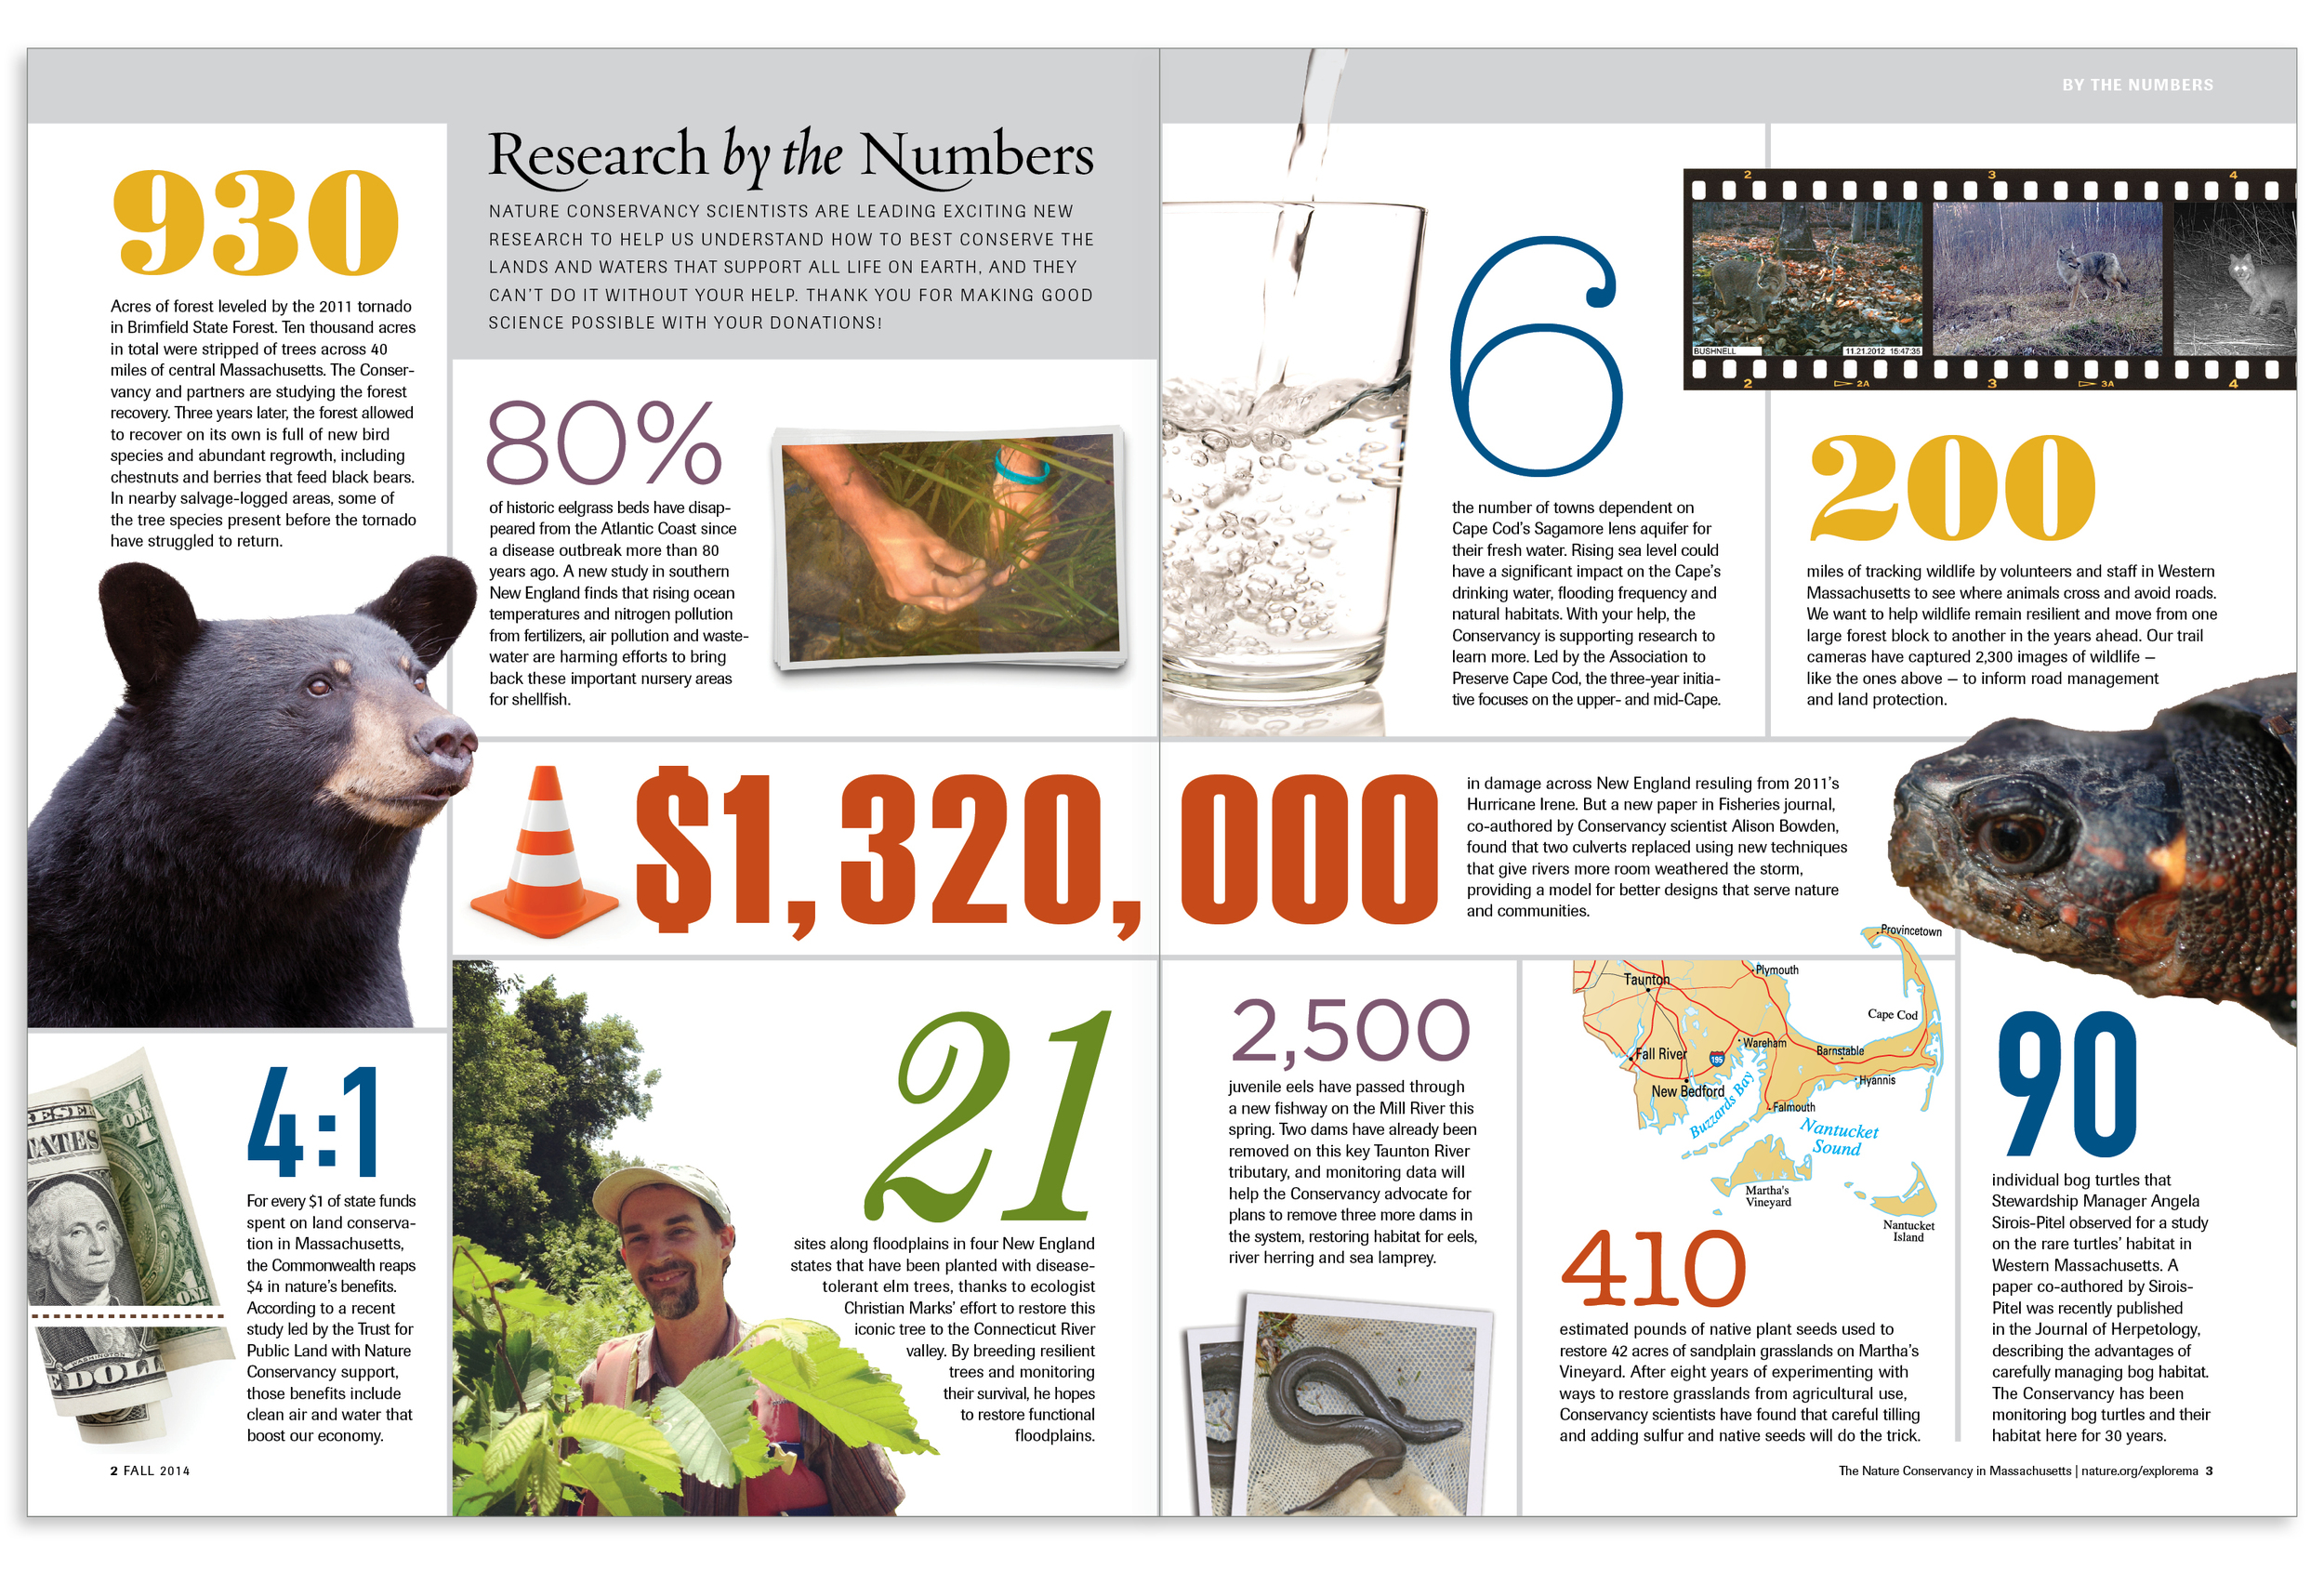 Research by the Numbers